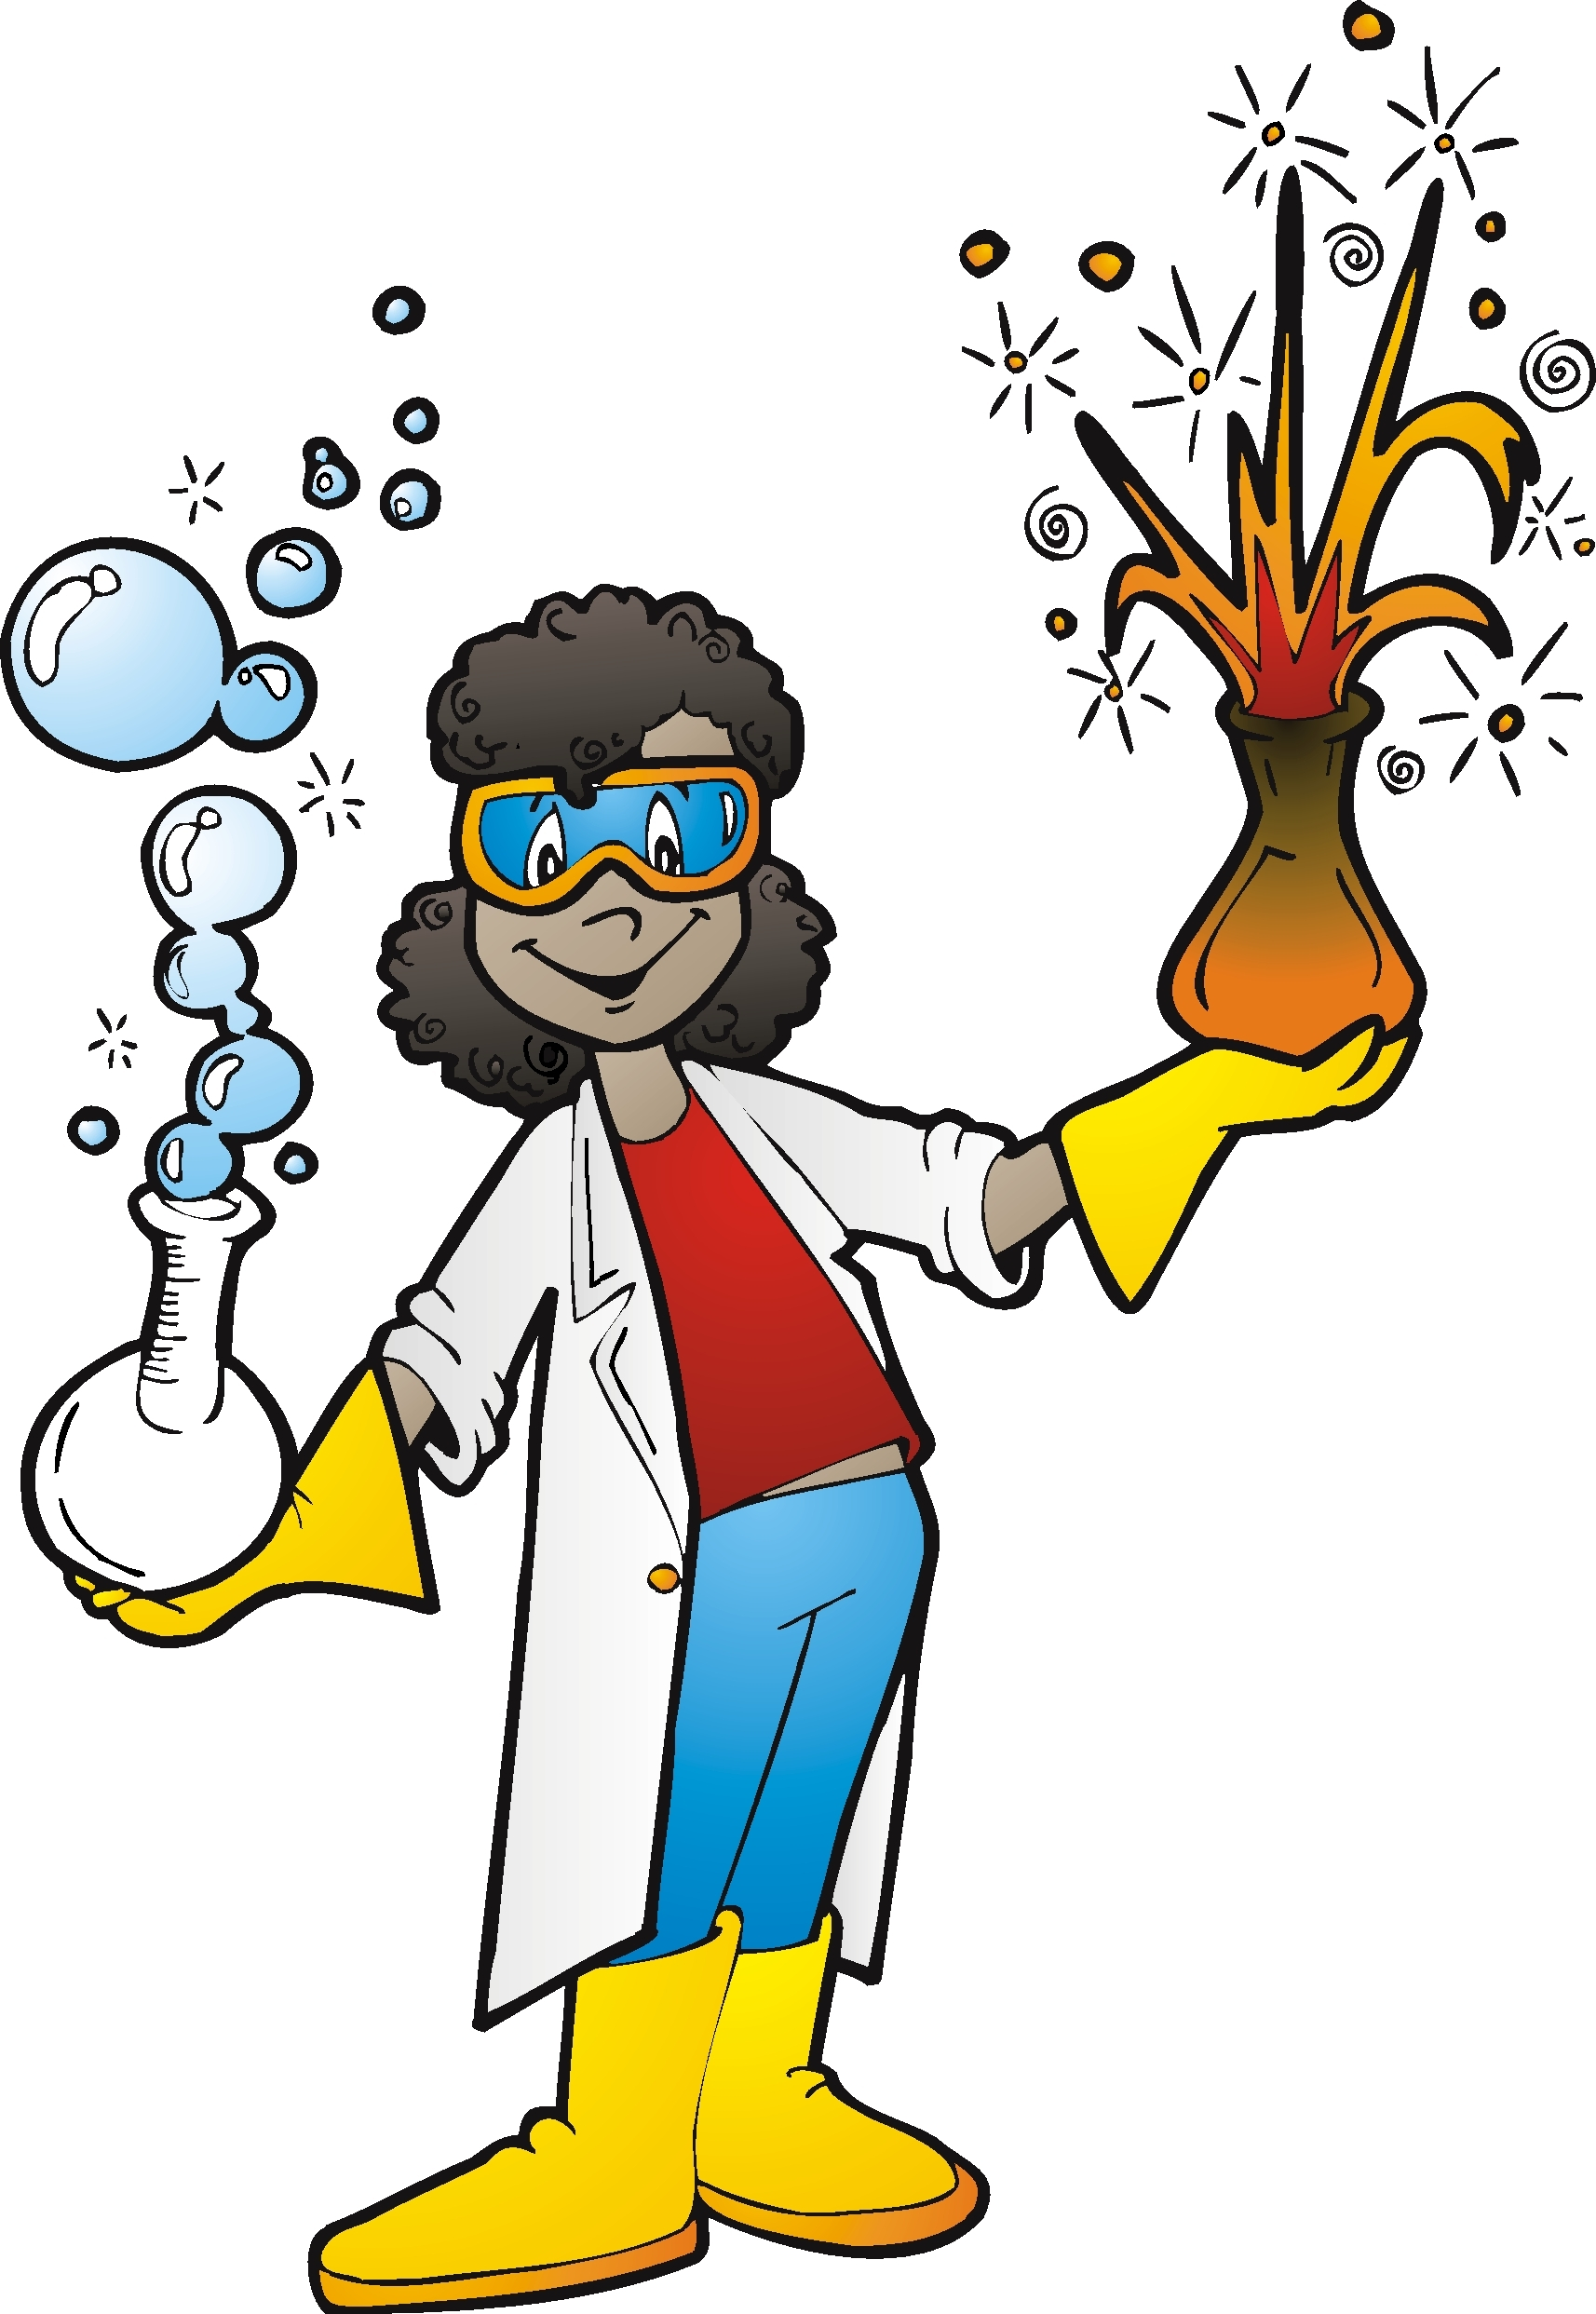 14 Science Fair Clip Art Free Cliparts T-14 Science Fair Clip Art Free Cliparts That You Can Download To You-16